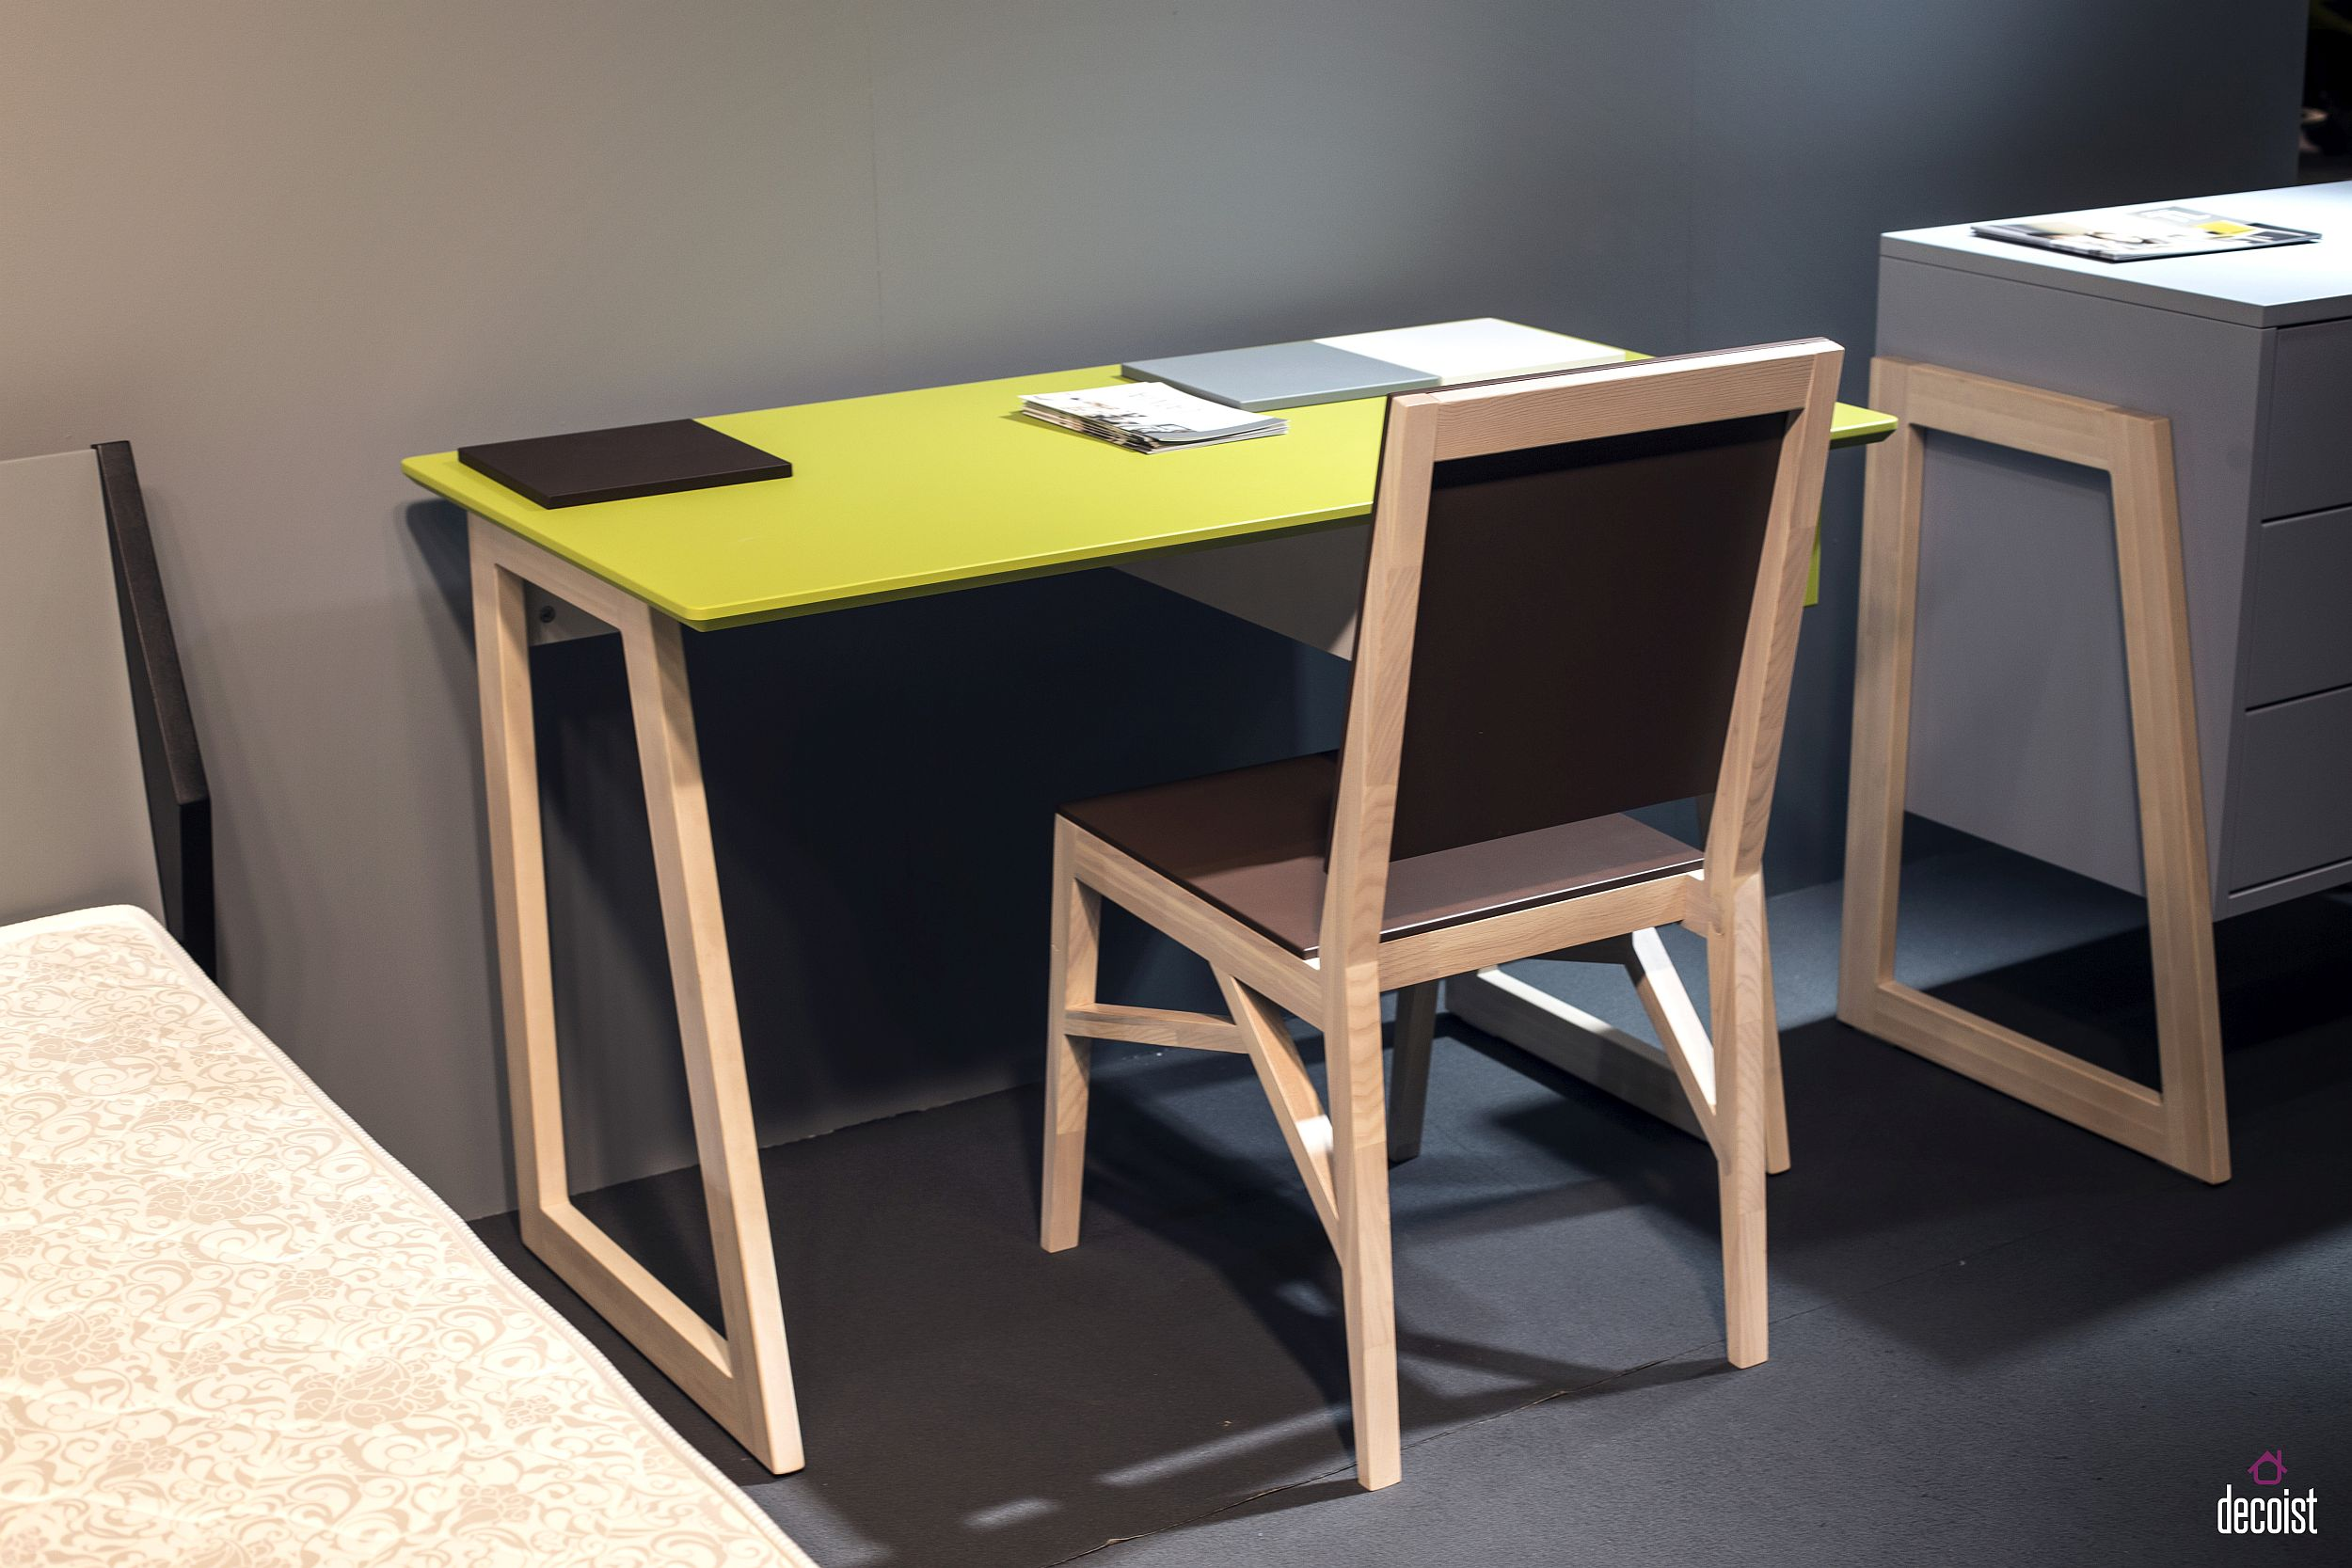 Junior Desk is cool for the home workstation and study zone